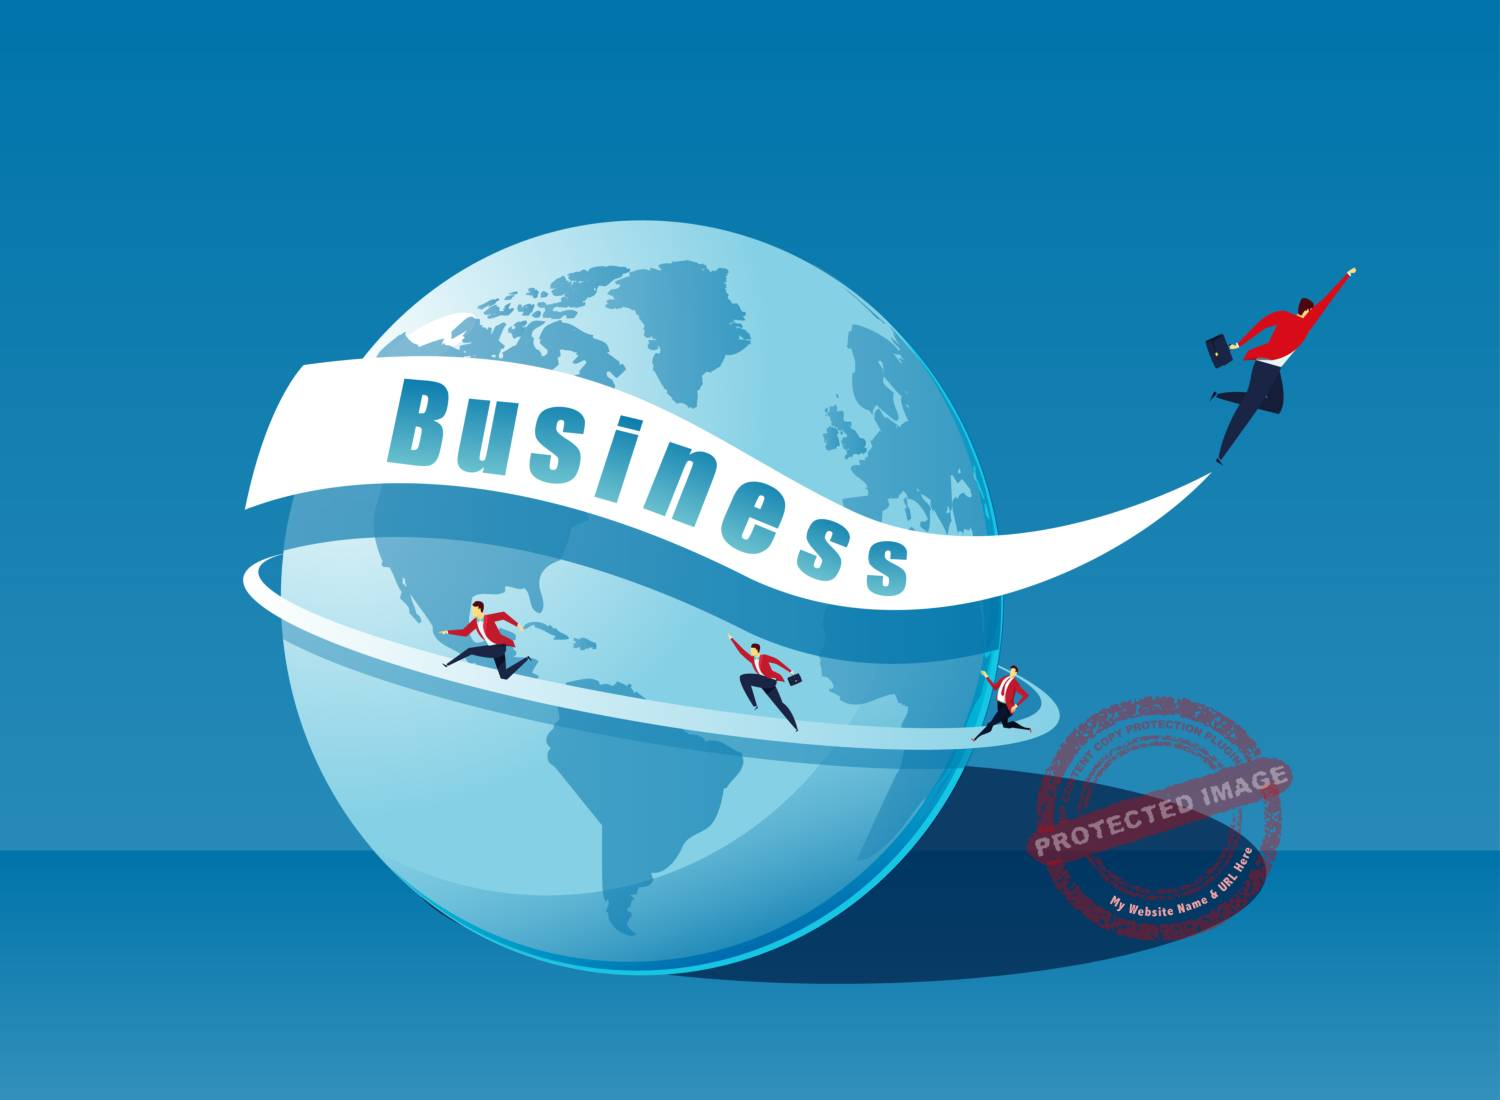 How To Globalize A Business - (STRATEGIES) SmallBusiness.ng